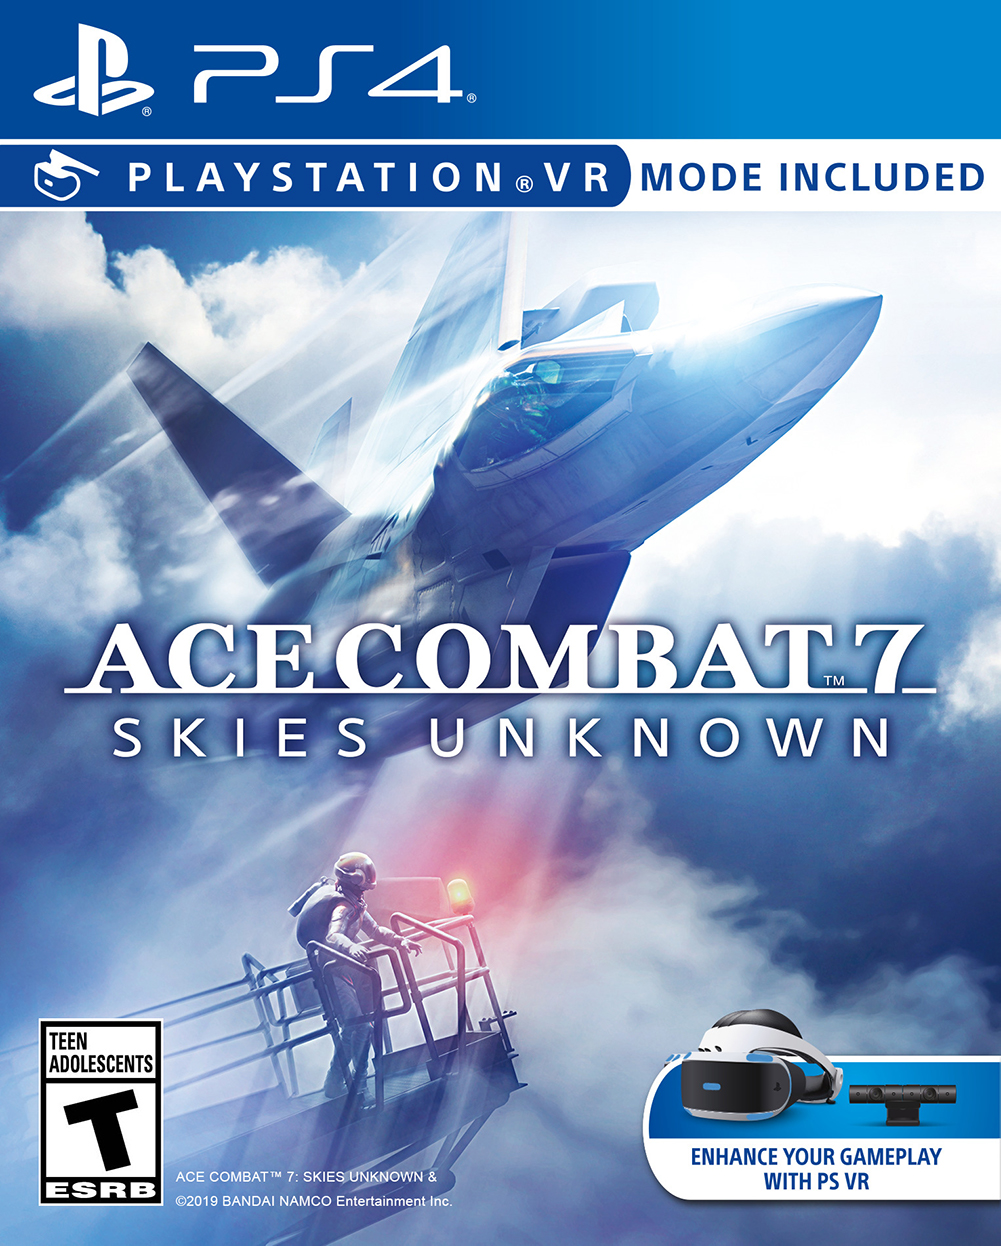 Ace Combat 7 Skies Unknown PS4 Portada